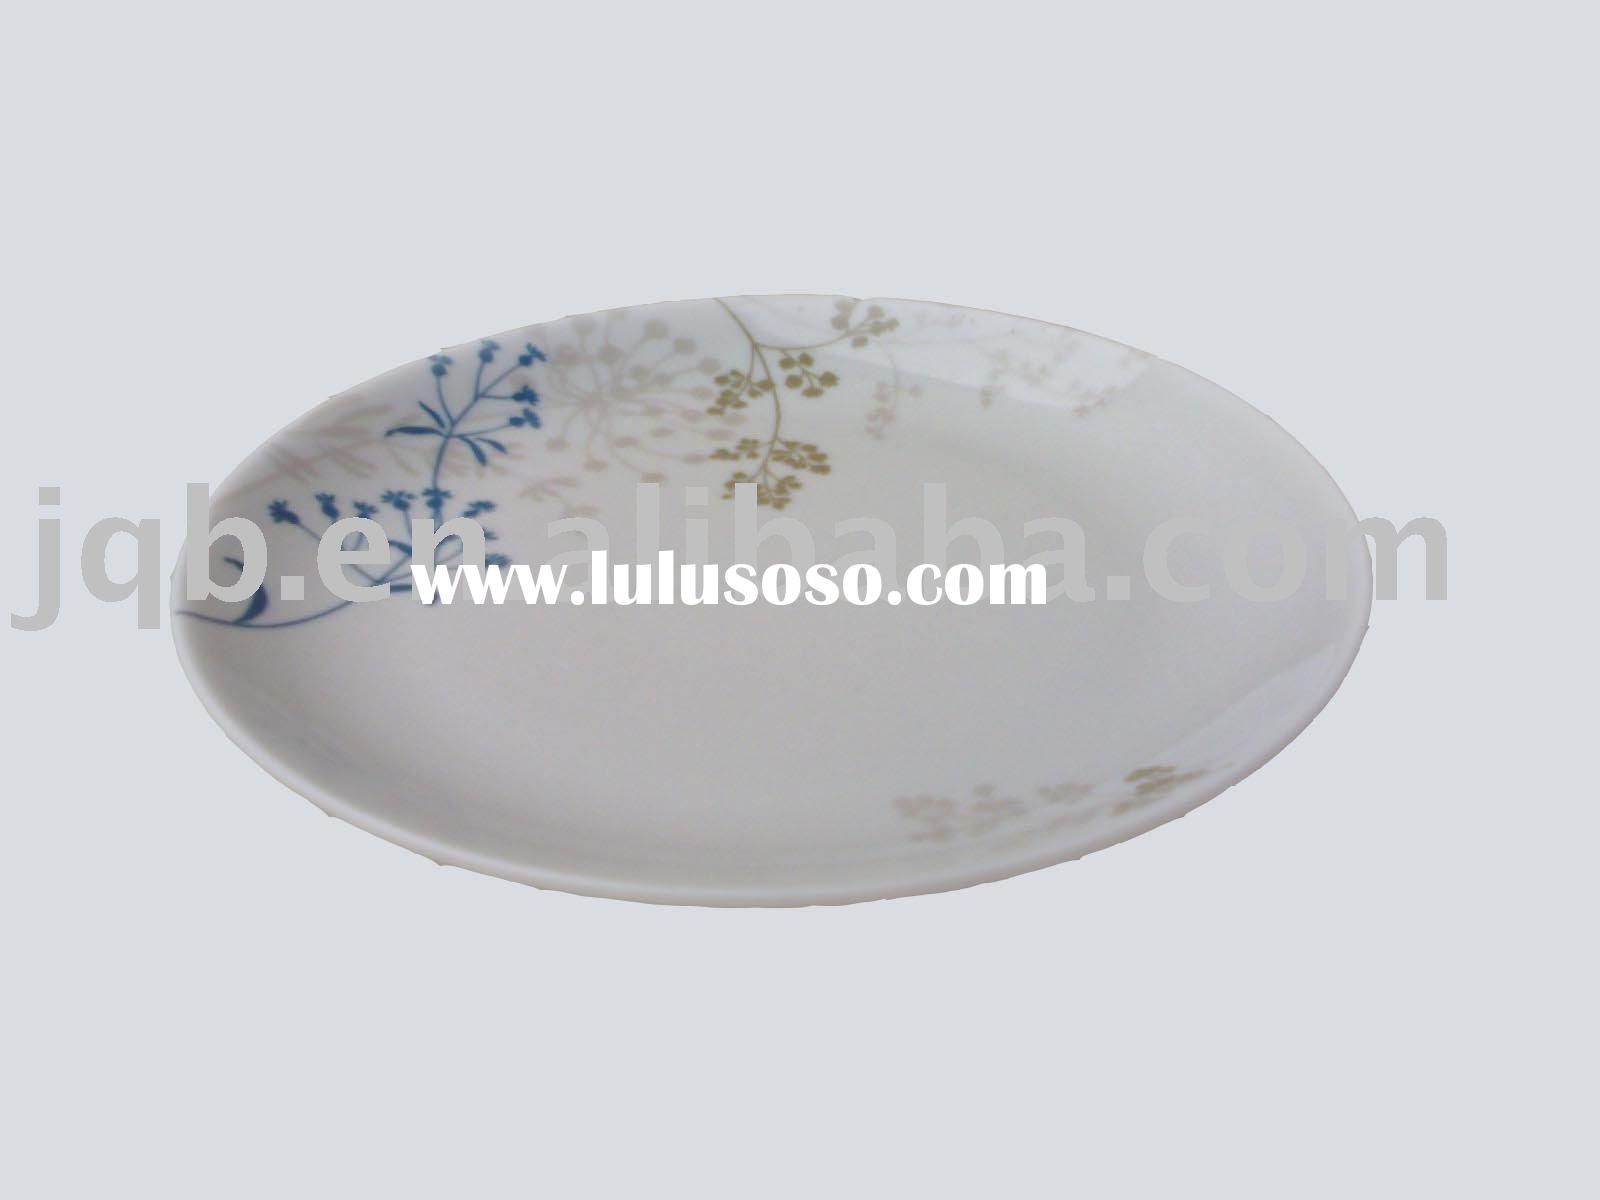 Porcelain Dishes and Plates